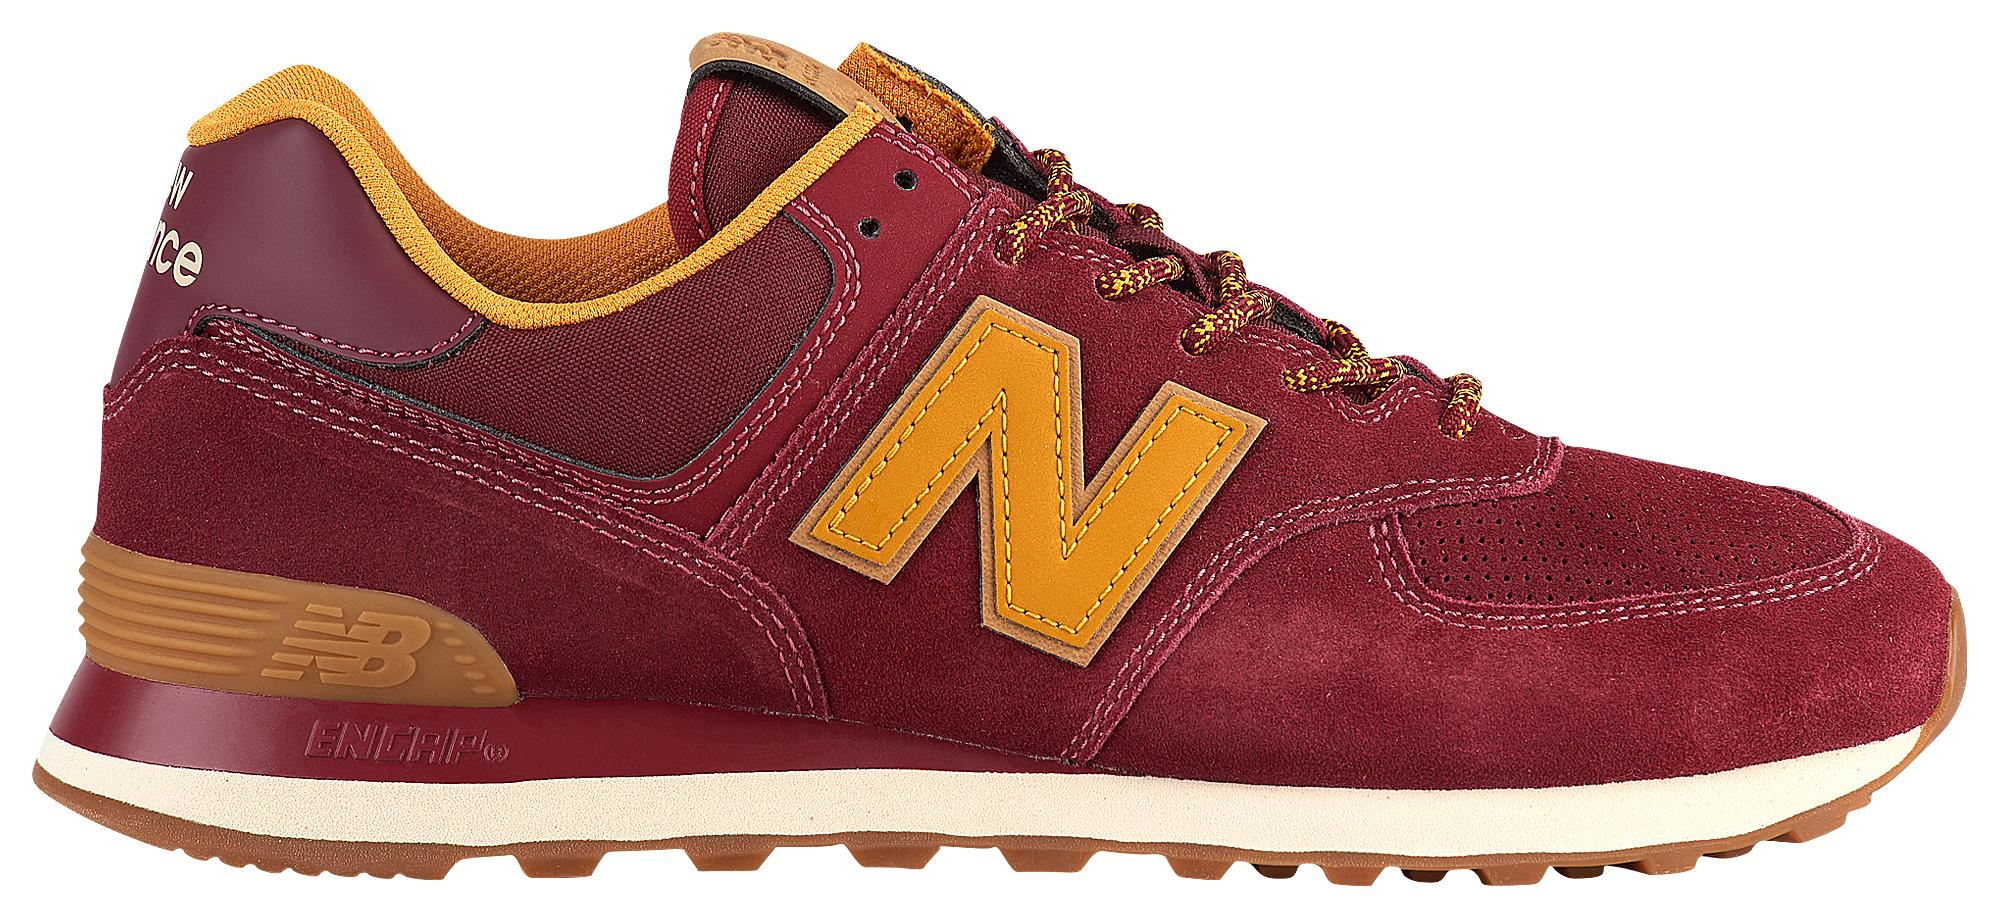 new arrival db003 b5251 New Balance 574 Classic in Red for Men - Lyst